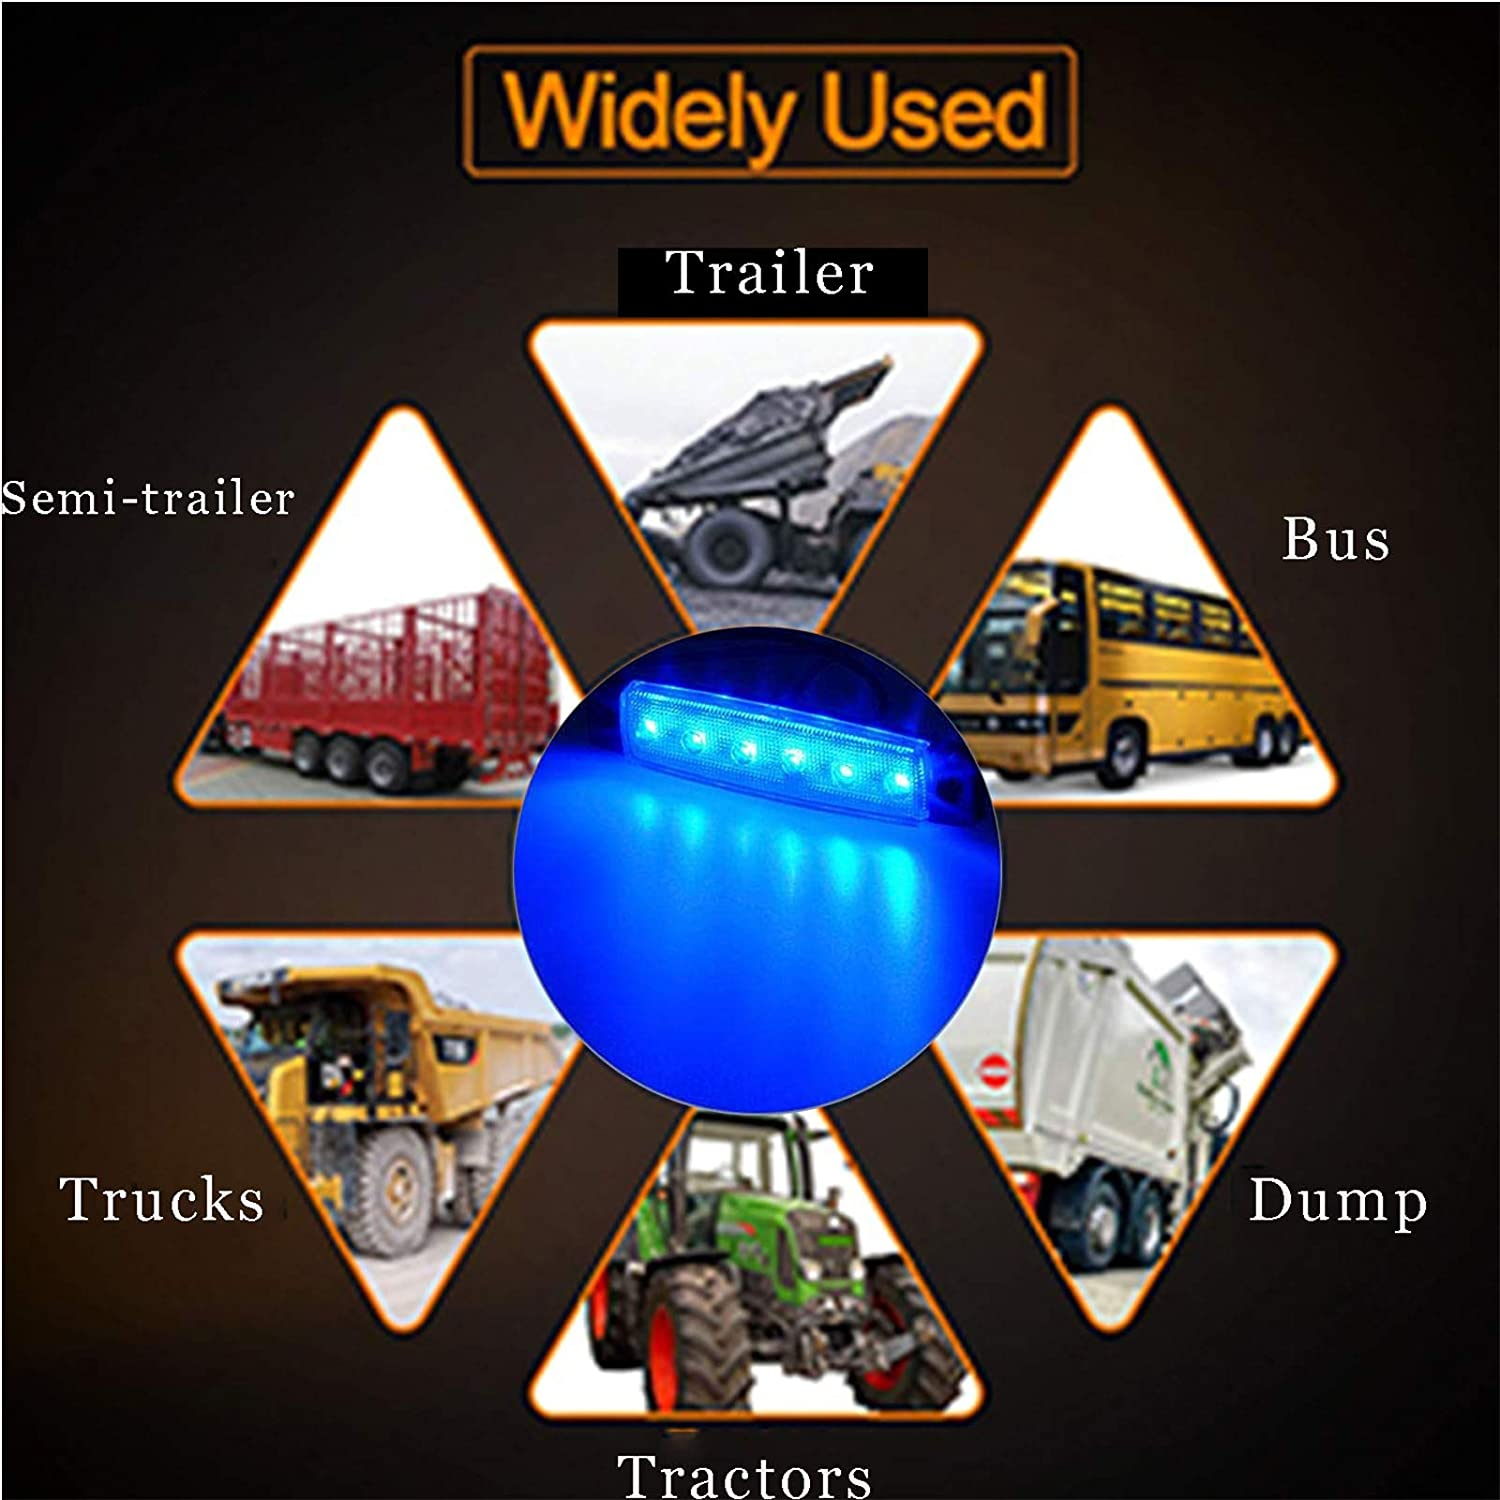 Cab,RV,SUV HGV,Offroad NBWDY 10 Pcs Blue Led Rock Lights,Wheel Well Lights,3.8 Sealed Led Underglow Kit for Jeep,Snowmobile,Truck,Golf Cart,Lorry,RV,Camper